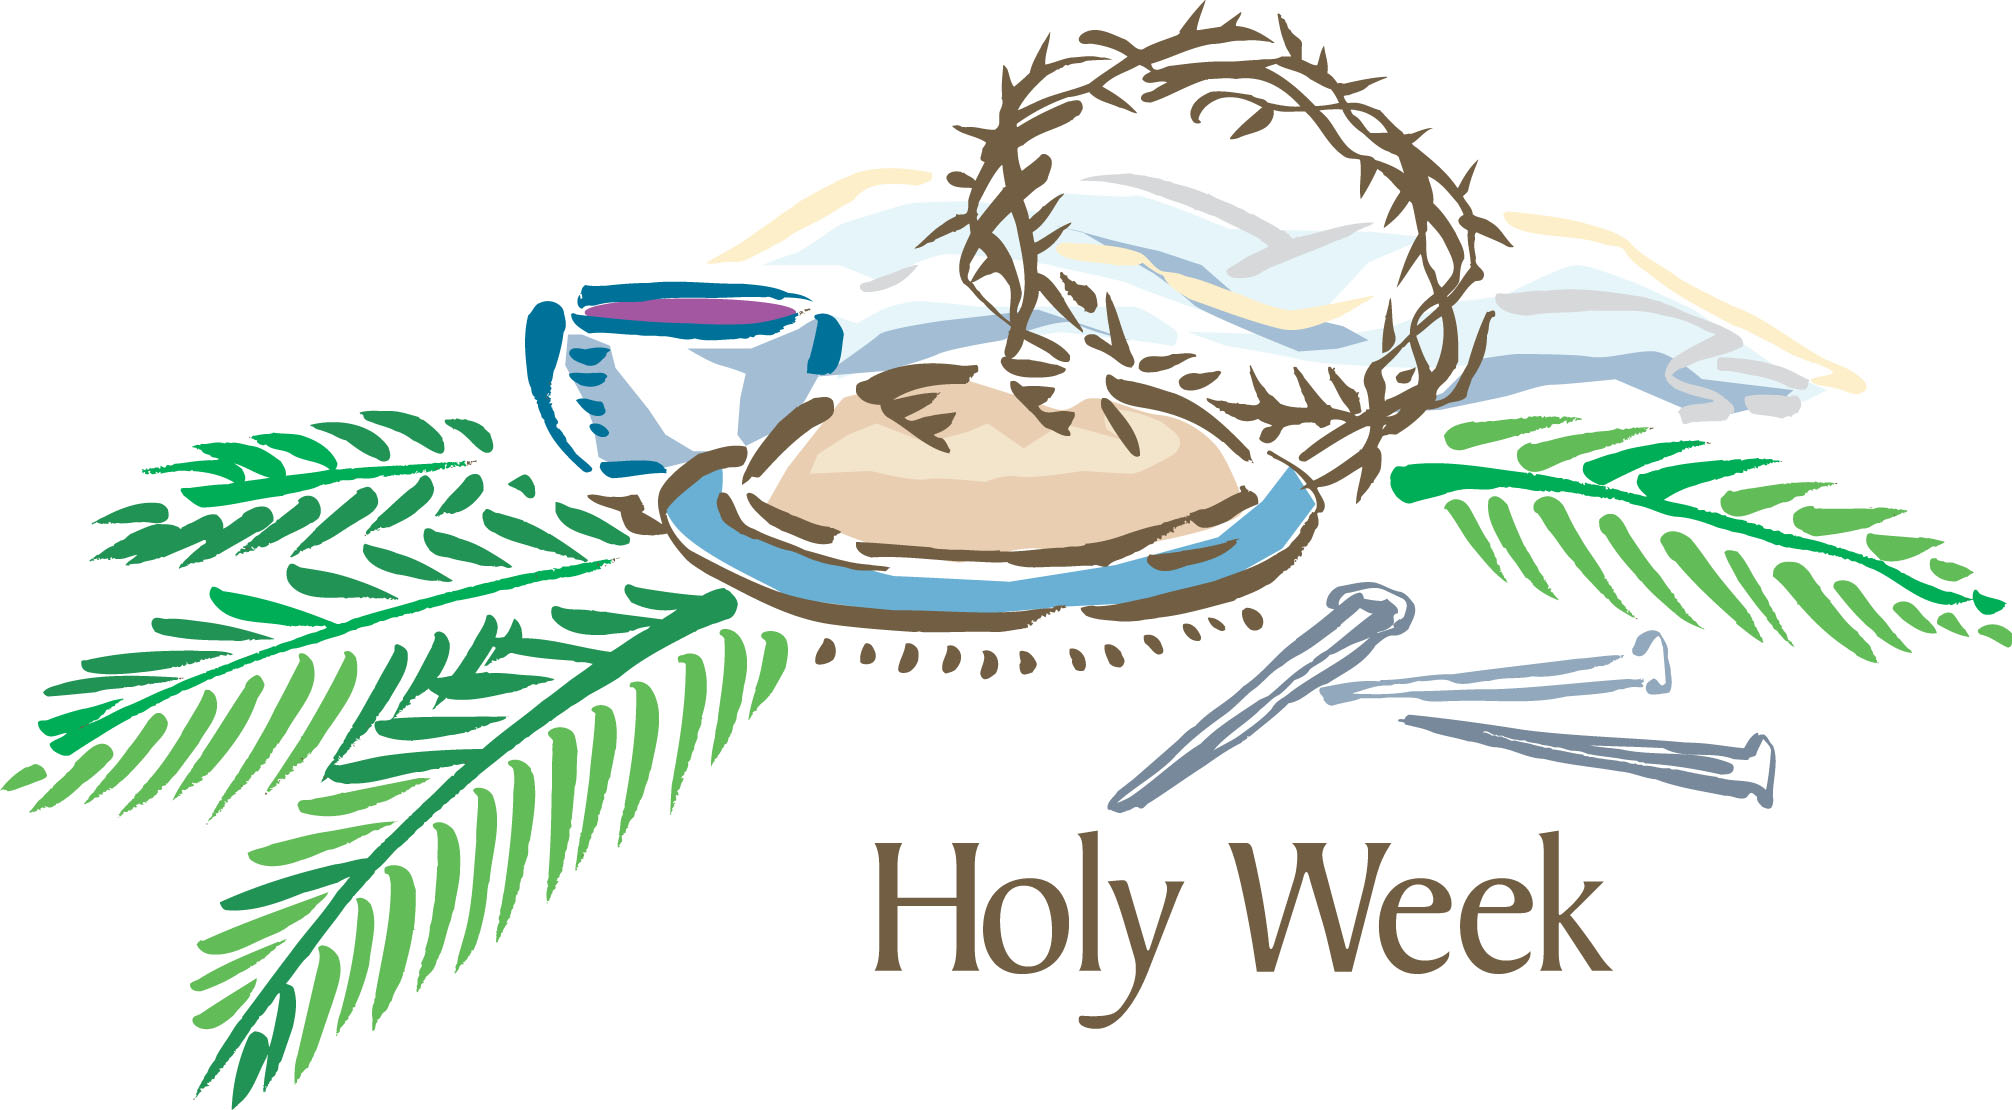 Holy week clipart lent symbol. Christ the king lutheran